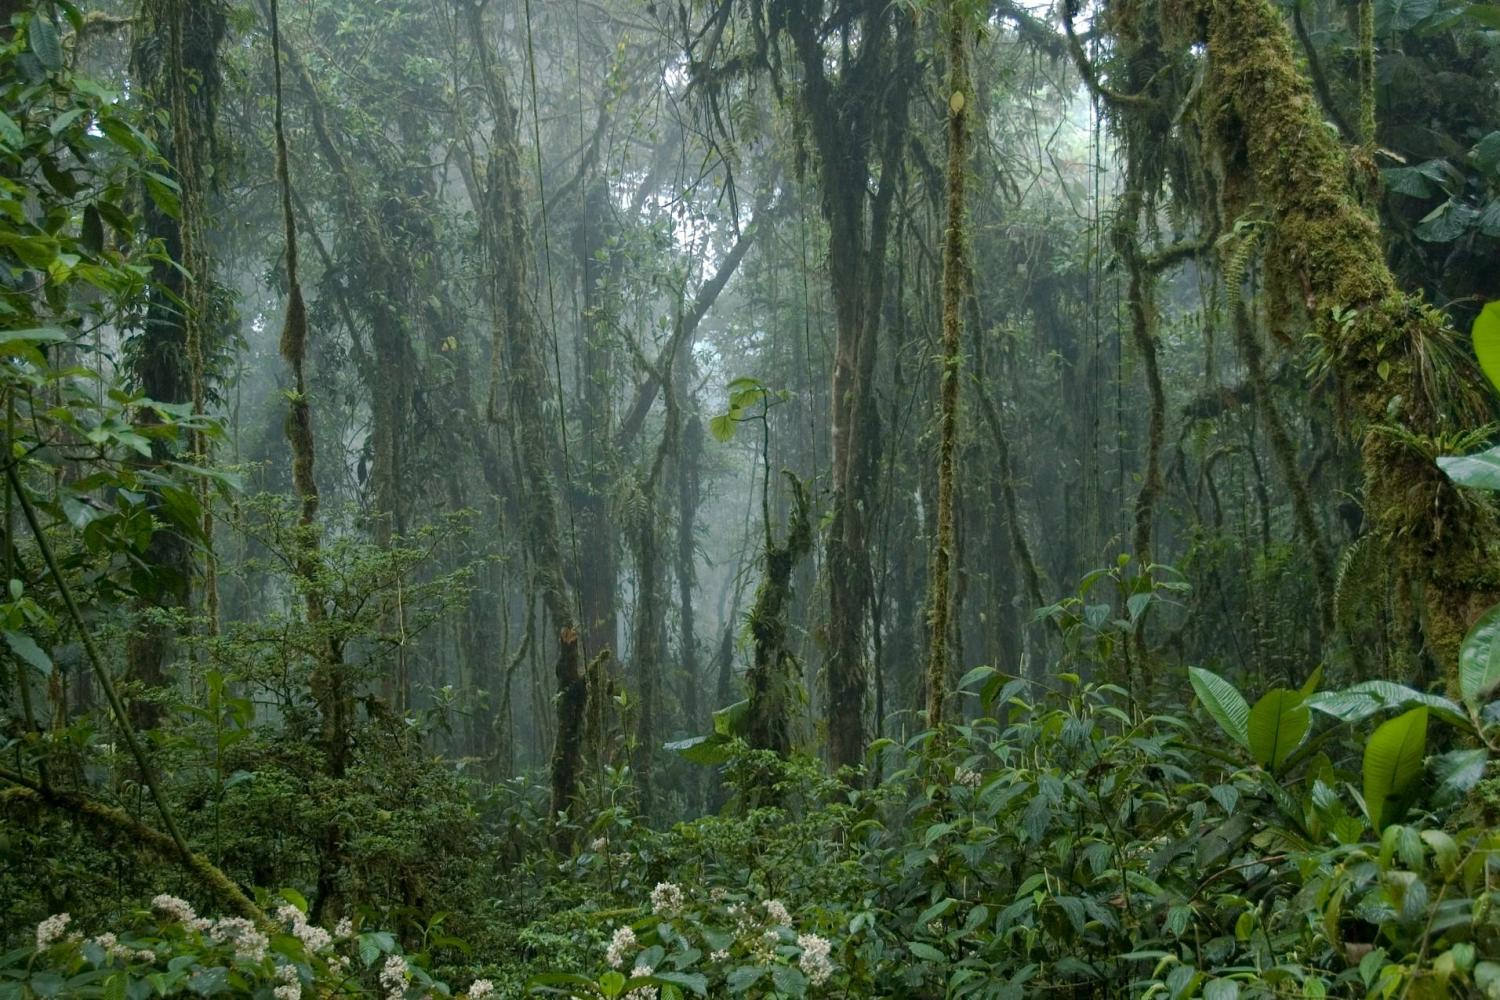 Immerse yourself in the natural landscape of the Monteverde Cloud Forest